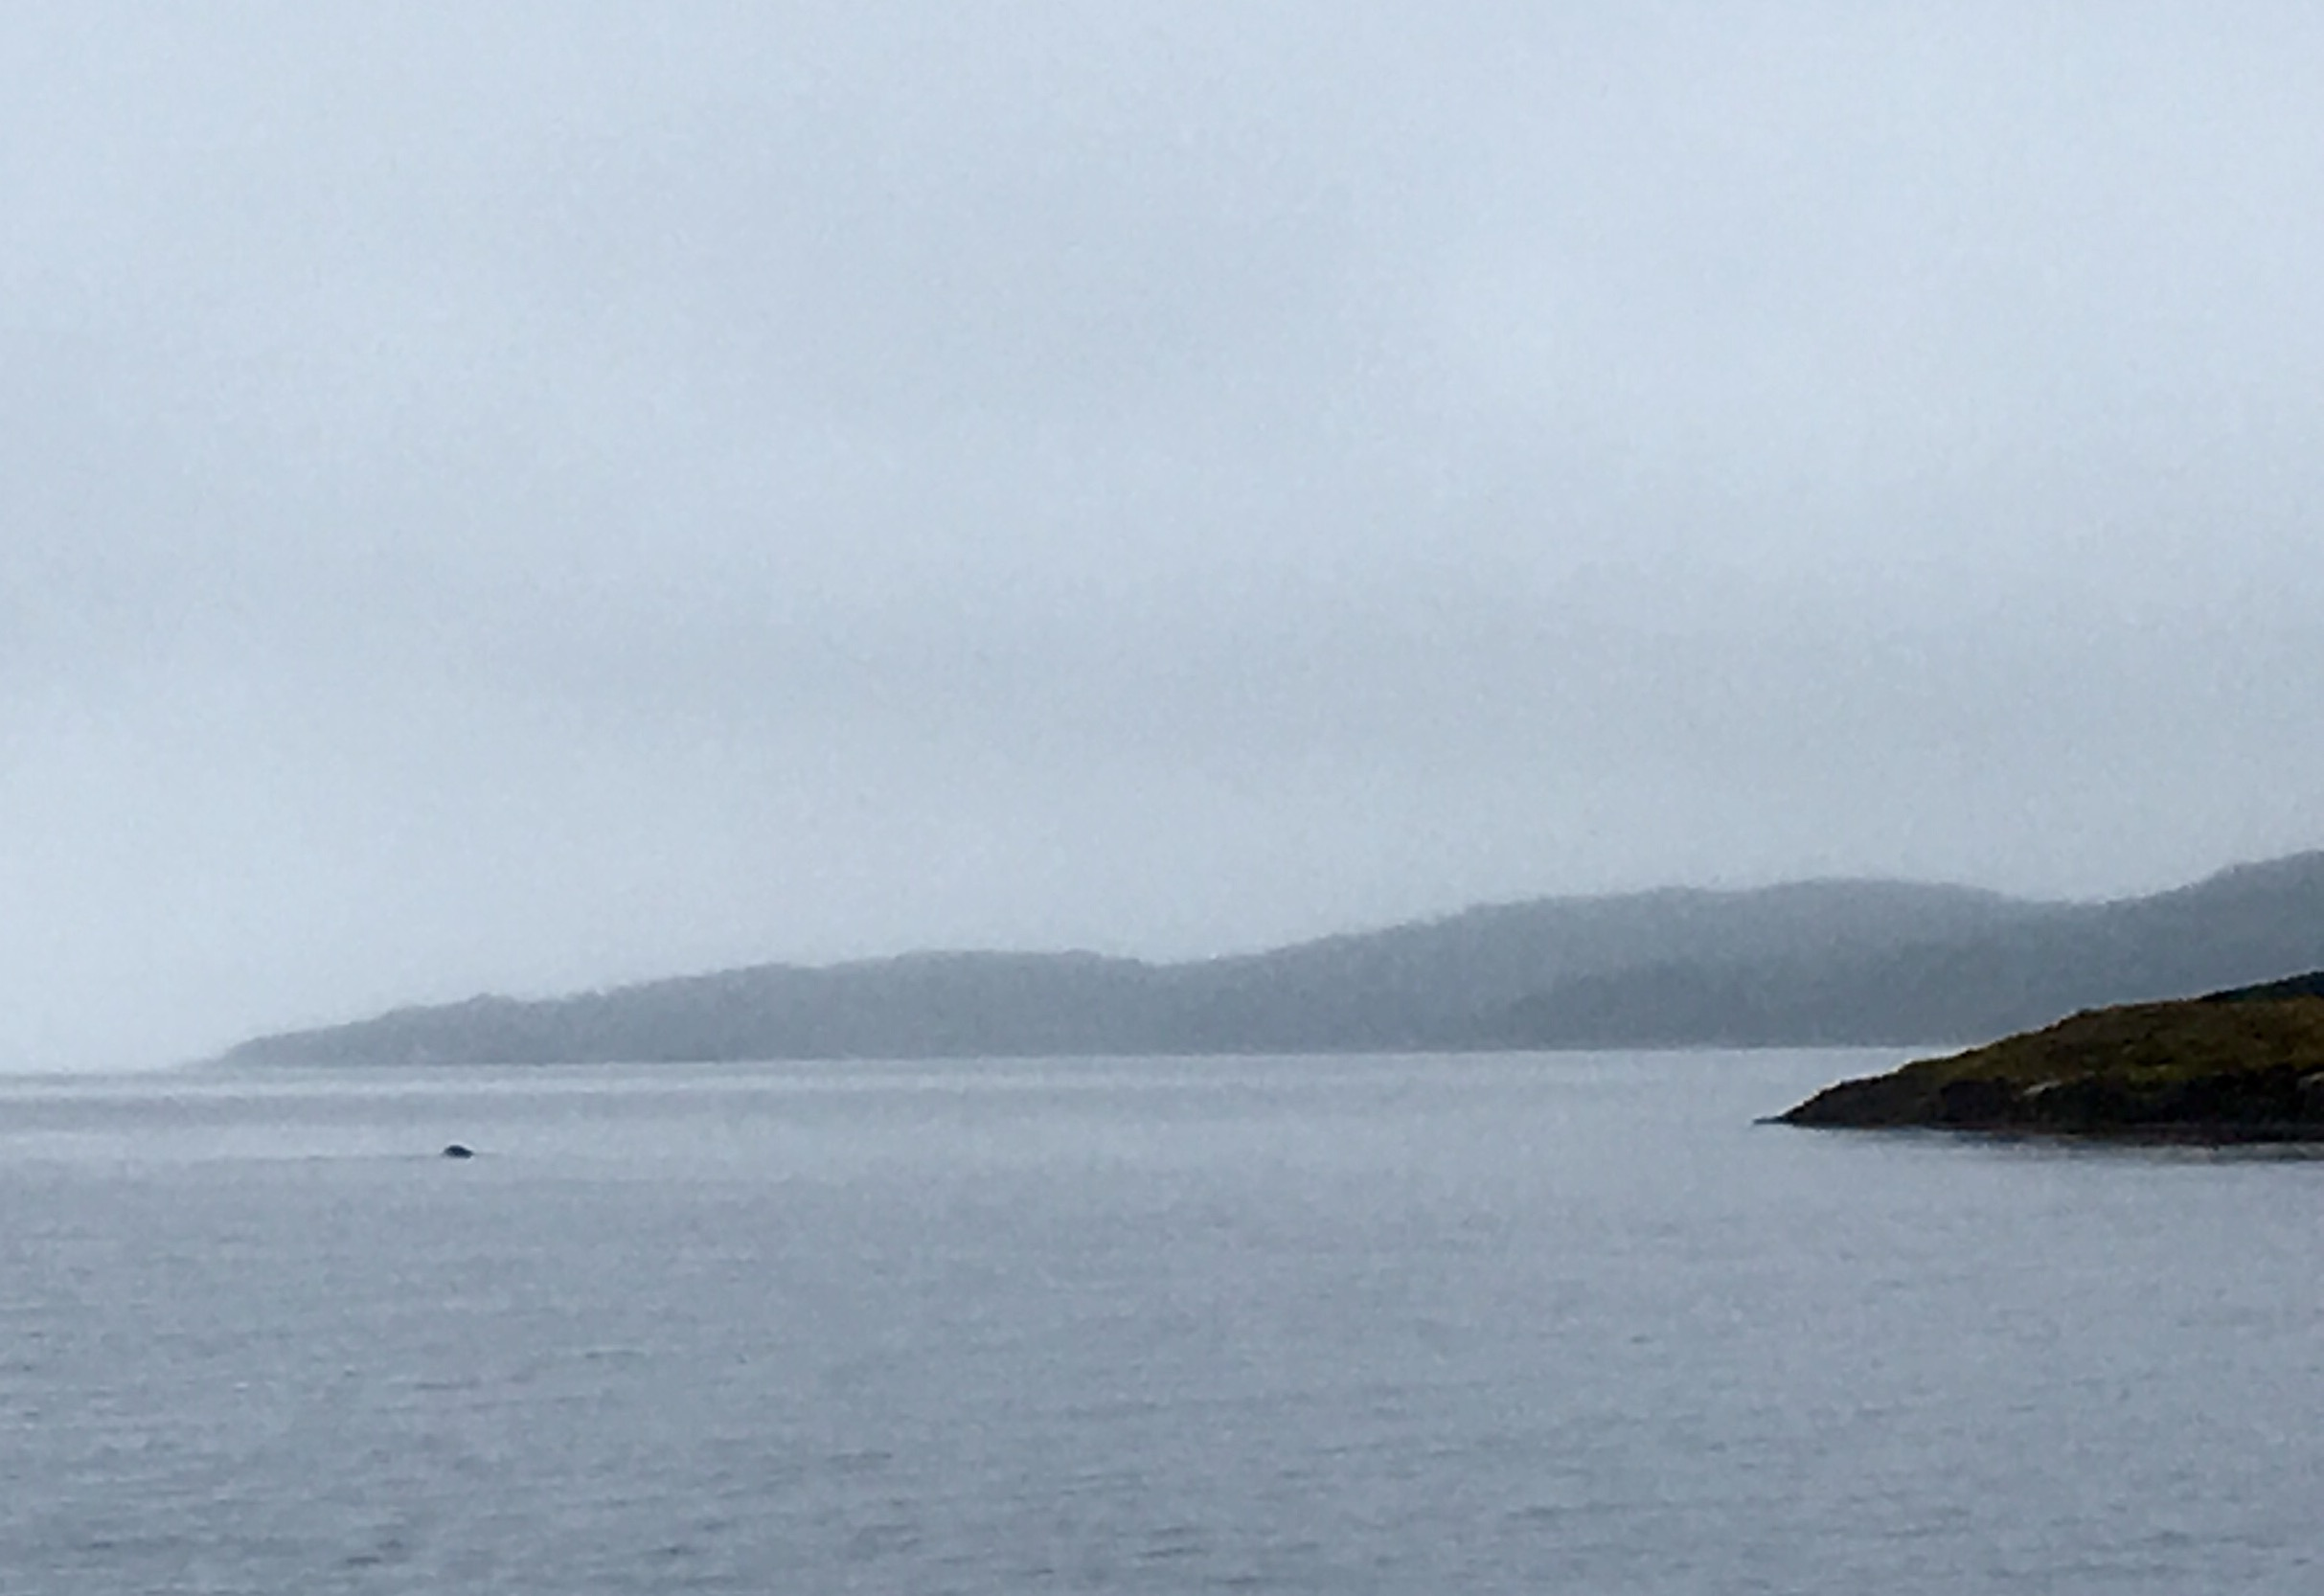 Spot the seal, he doesn't seem to mind the rain.